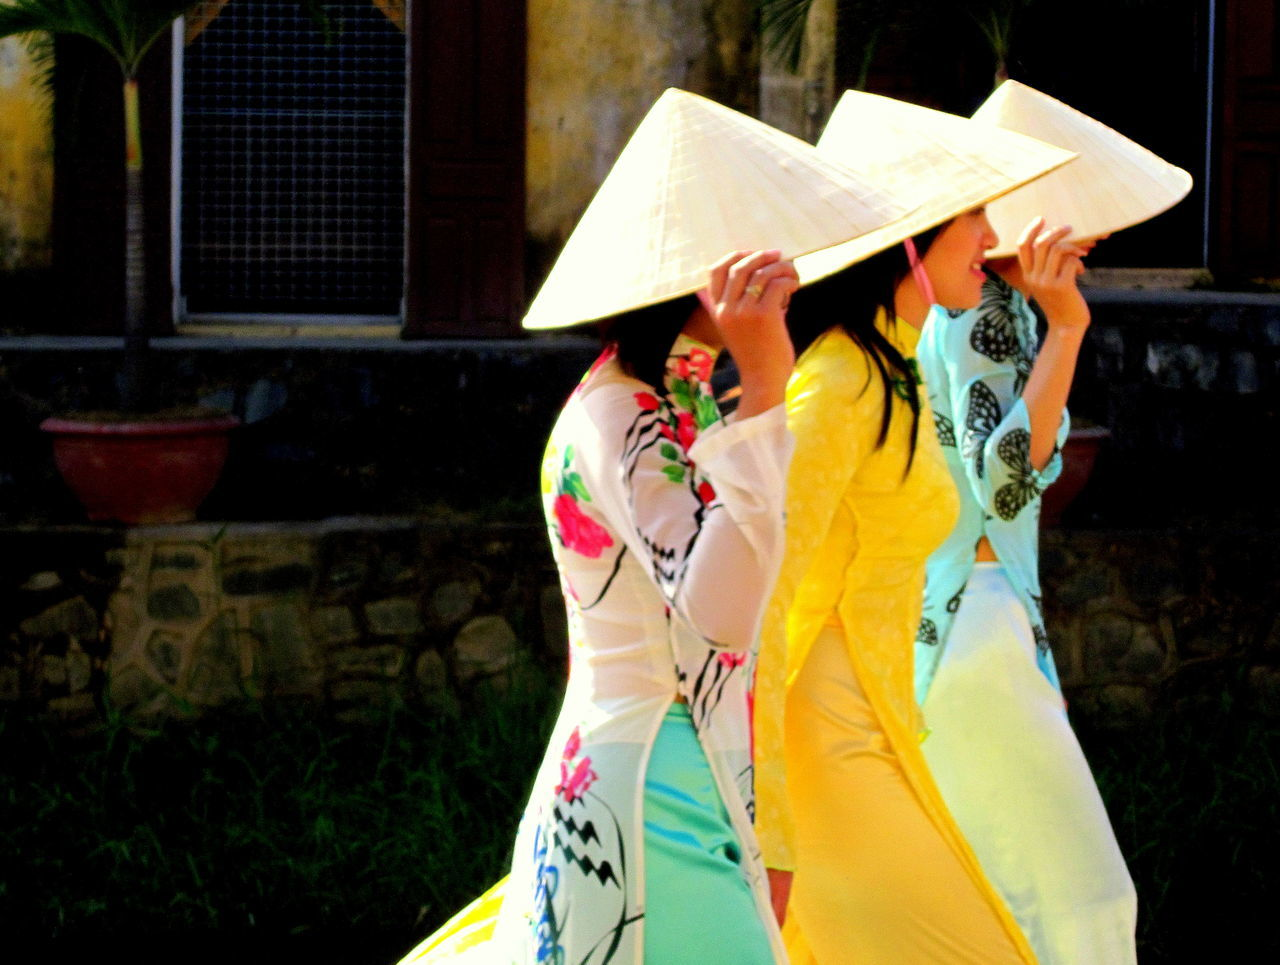 Ao Dai Ao Dai Vietnam Casual Clothing Day Fun Hoi An Hoi An, Vietnam Lifestyles Multi Colored Non La Non La Vietna Viet Nam Vietnam Vietnamese Vietnamese Girls Vietnamese Wedding View áo Dài ❤